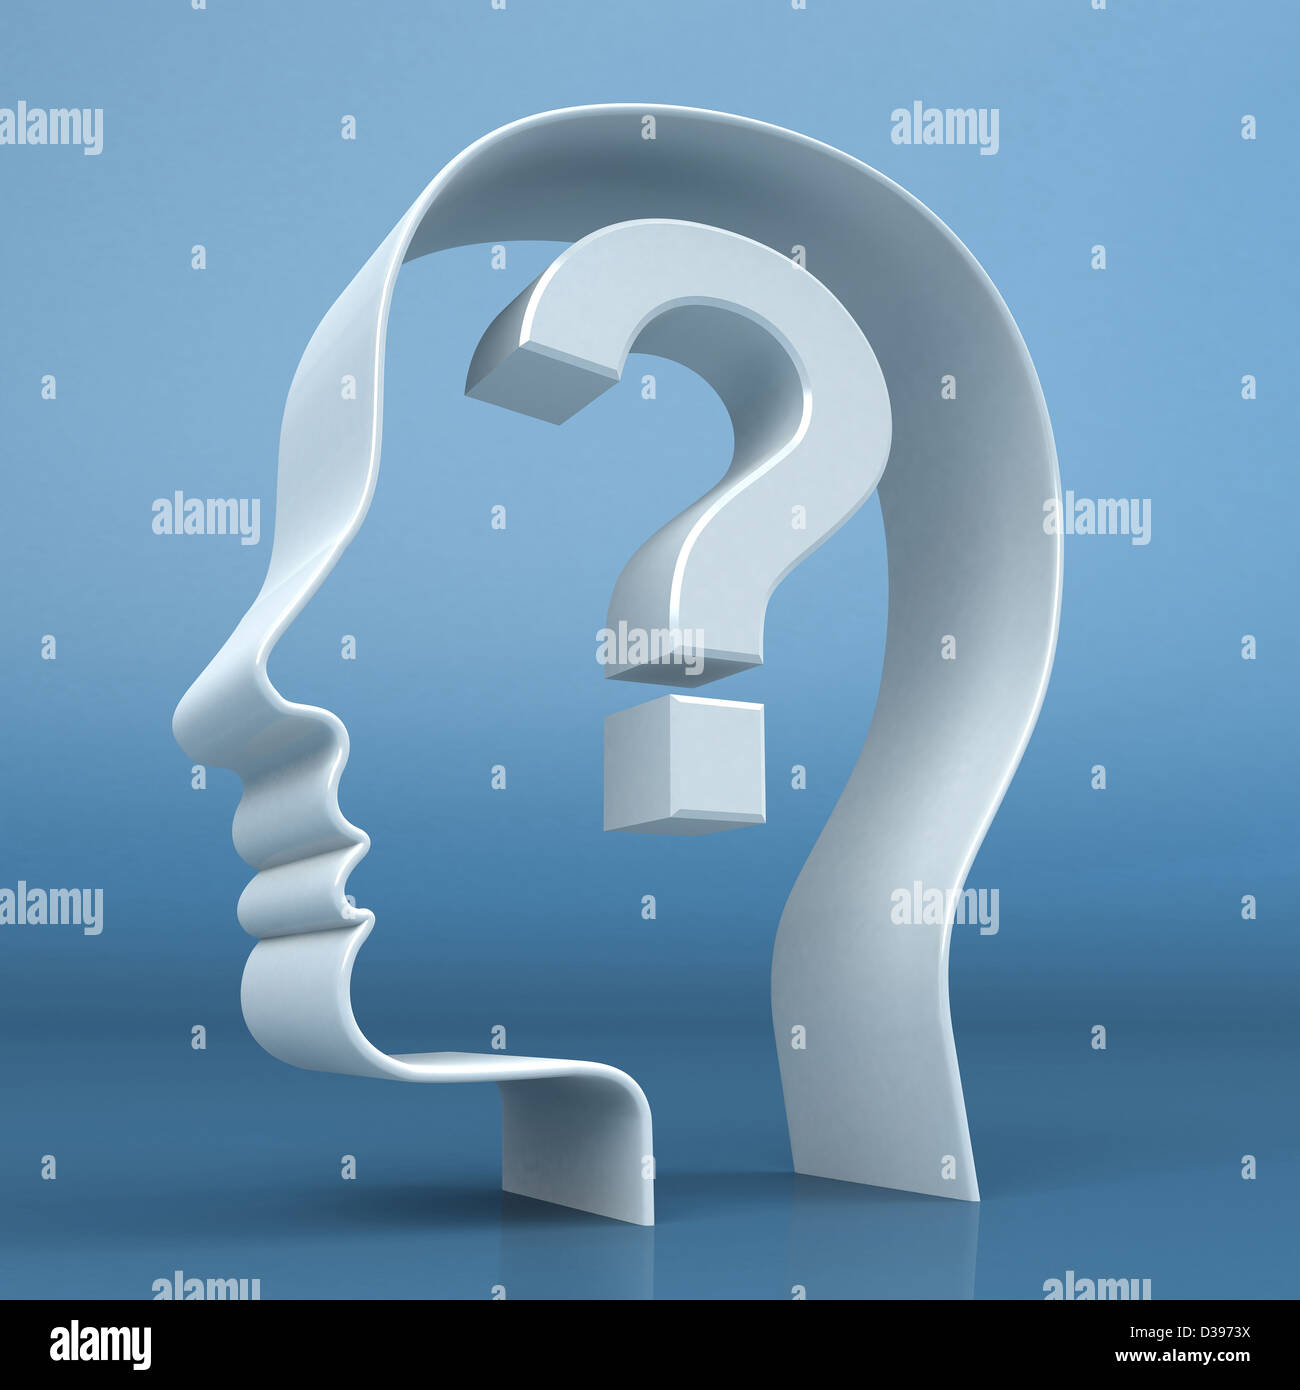 Conceptual shot of human head with question mark depicting confusion - Stock Image